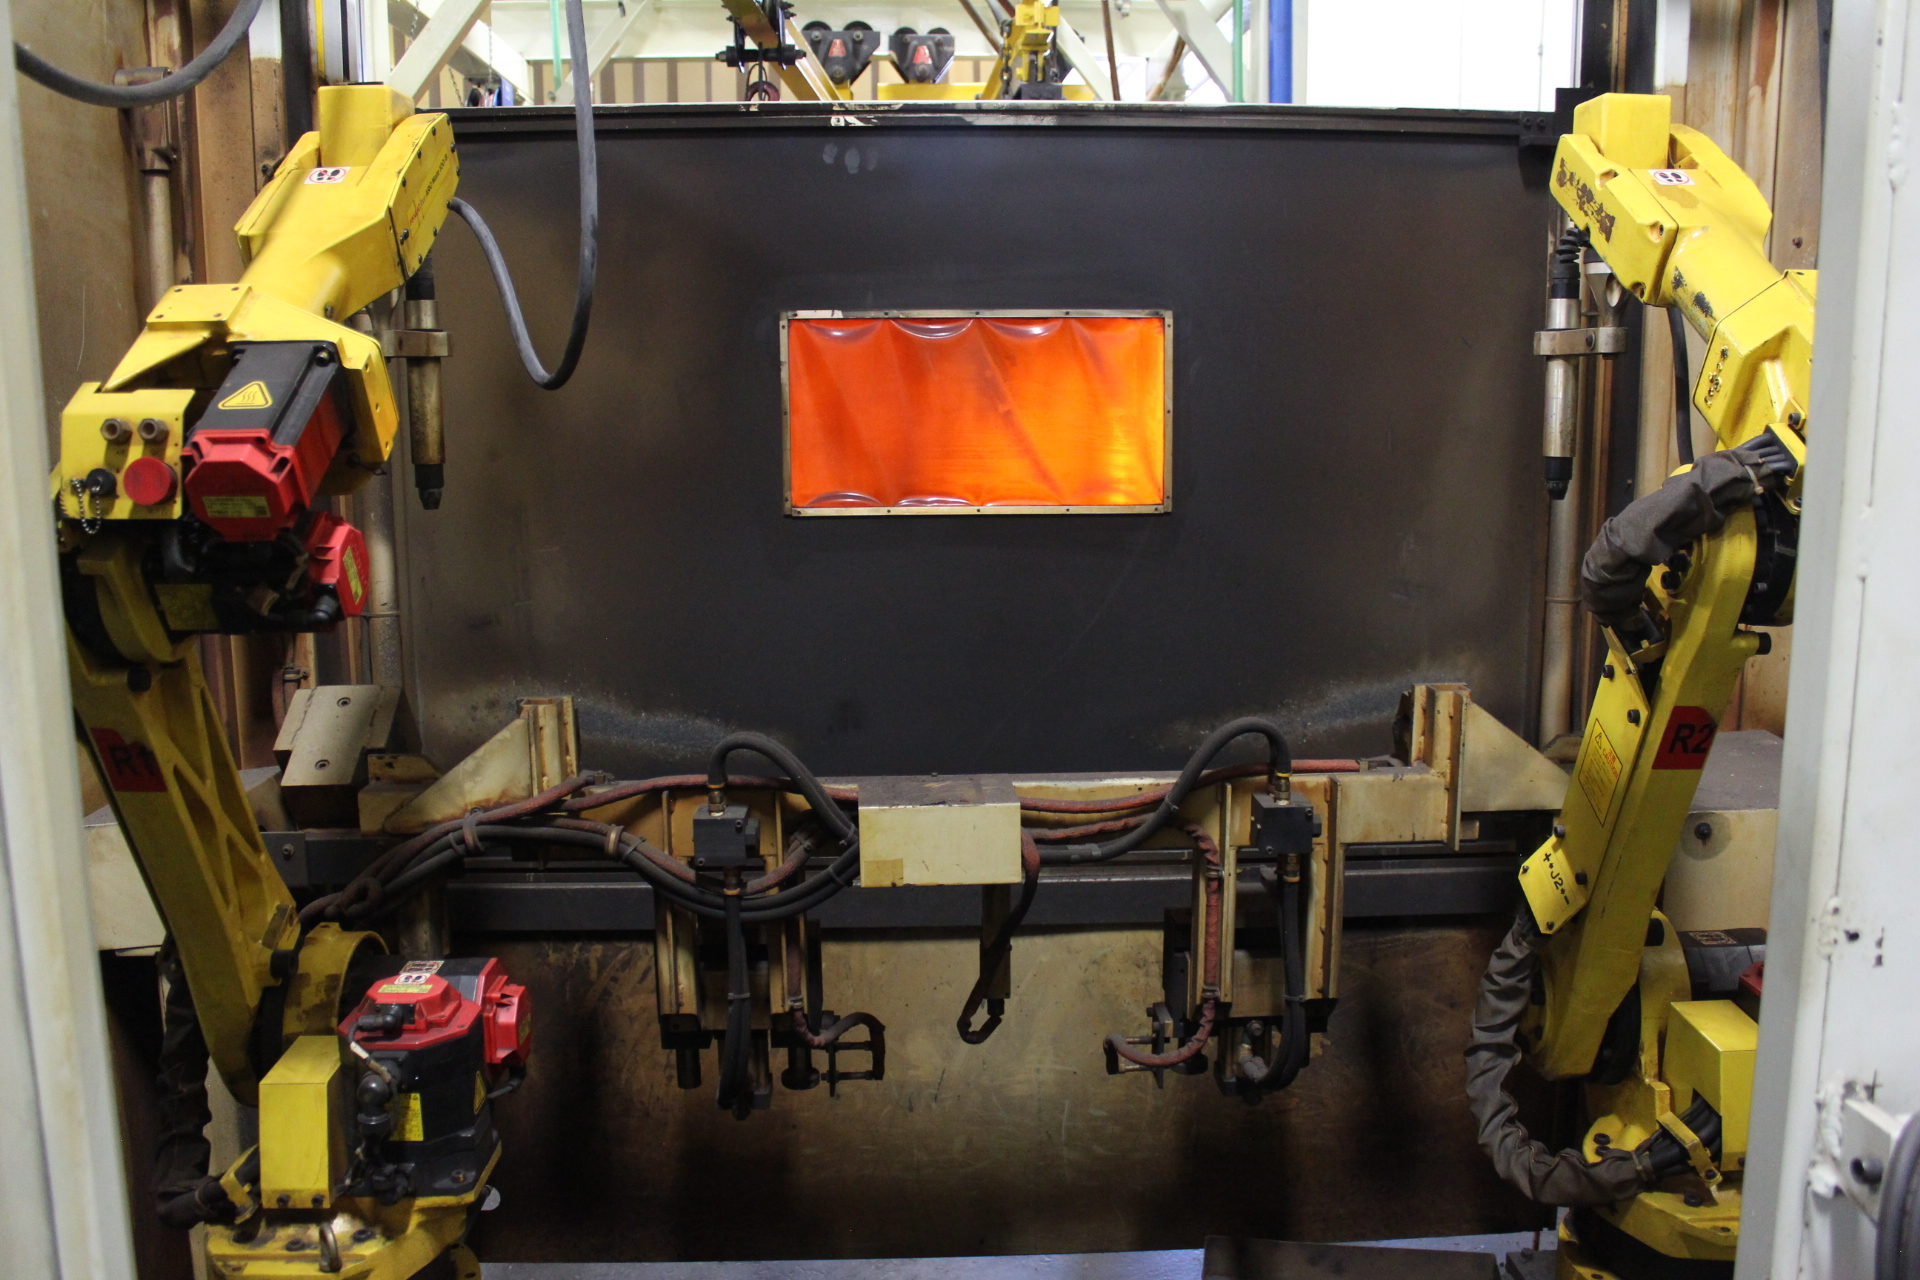 Lot 1 - Fanuc Robotic Welding Cell - Angola, Indiana